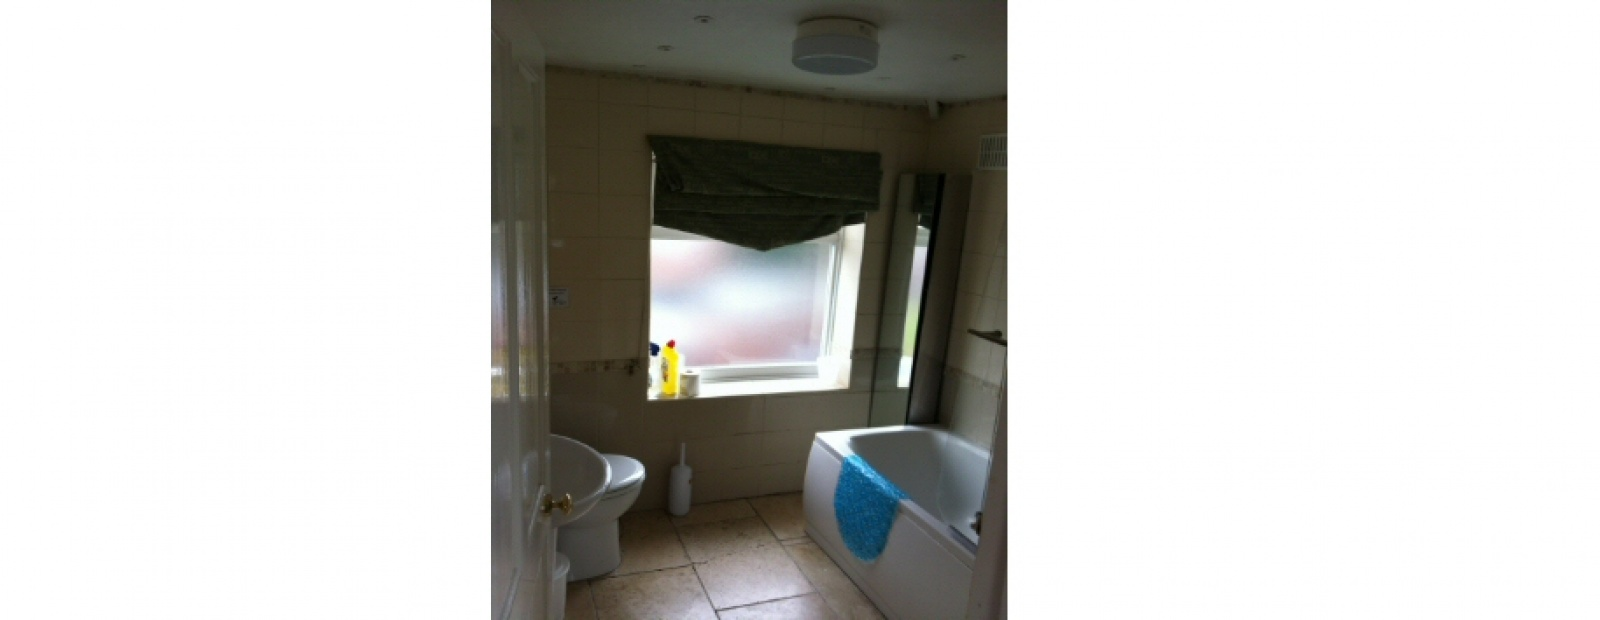 2 Mayfield Place East, Stoke-on-Trent, Staffordshire, United Kingdom ST4 6PA, 5 Rooms Rooms,House,For Rent,Mayfield Place East,1013